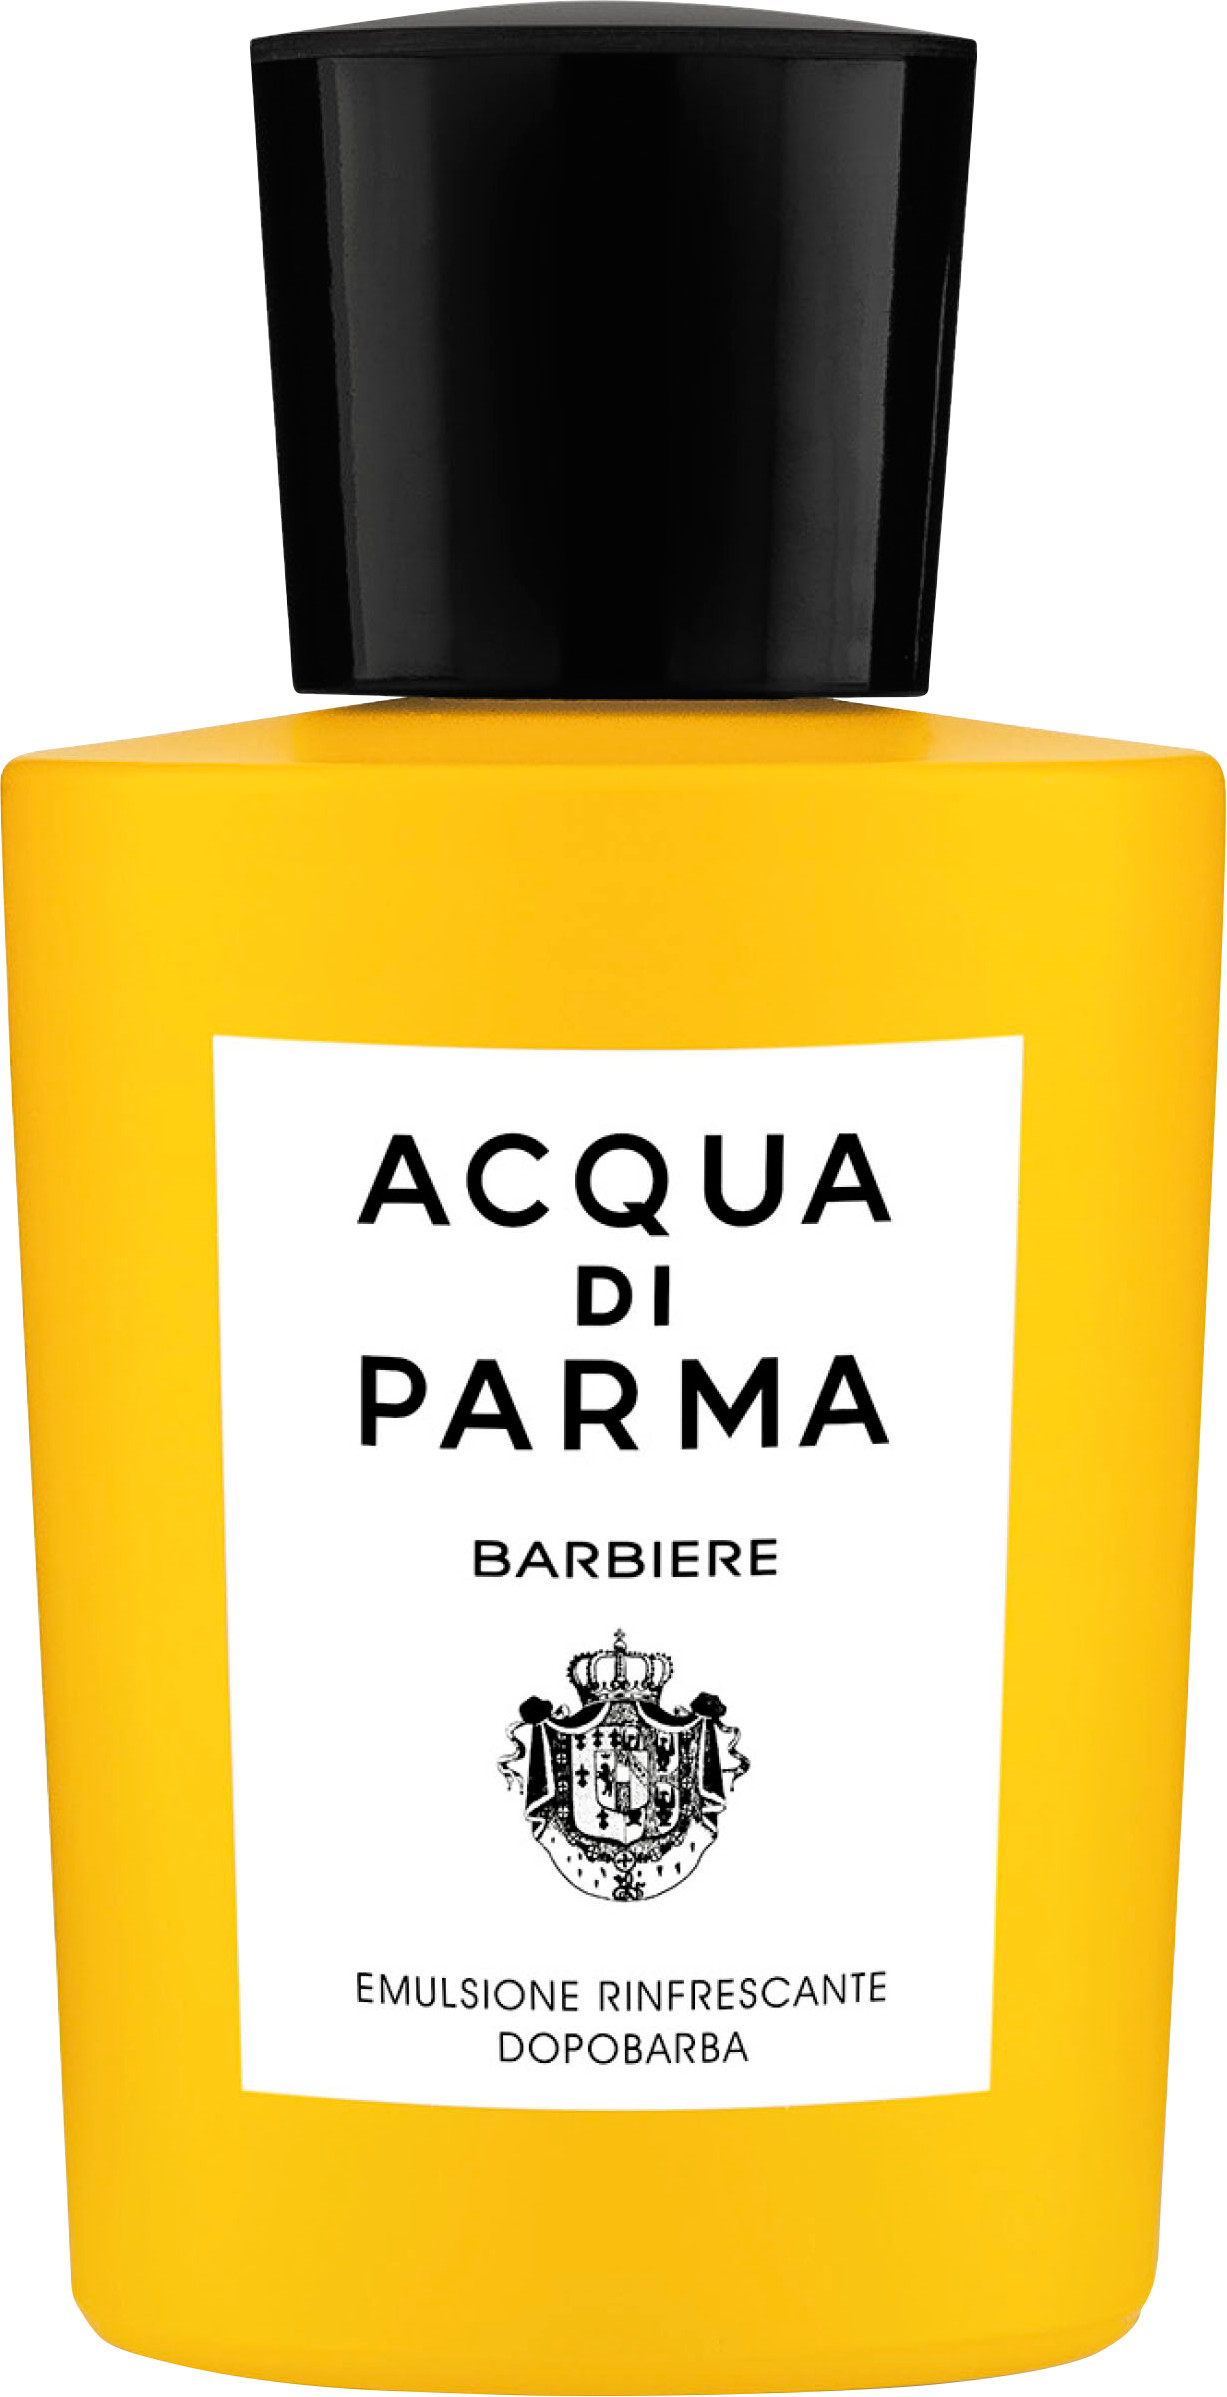 Fragrance Acqua Di Parma Barbiere Refreshing Emulsion